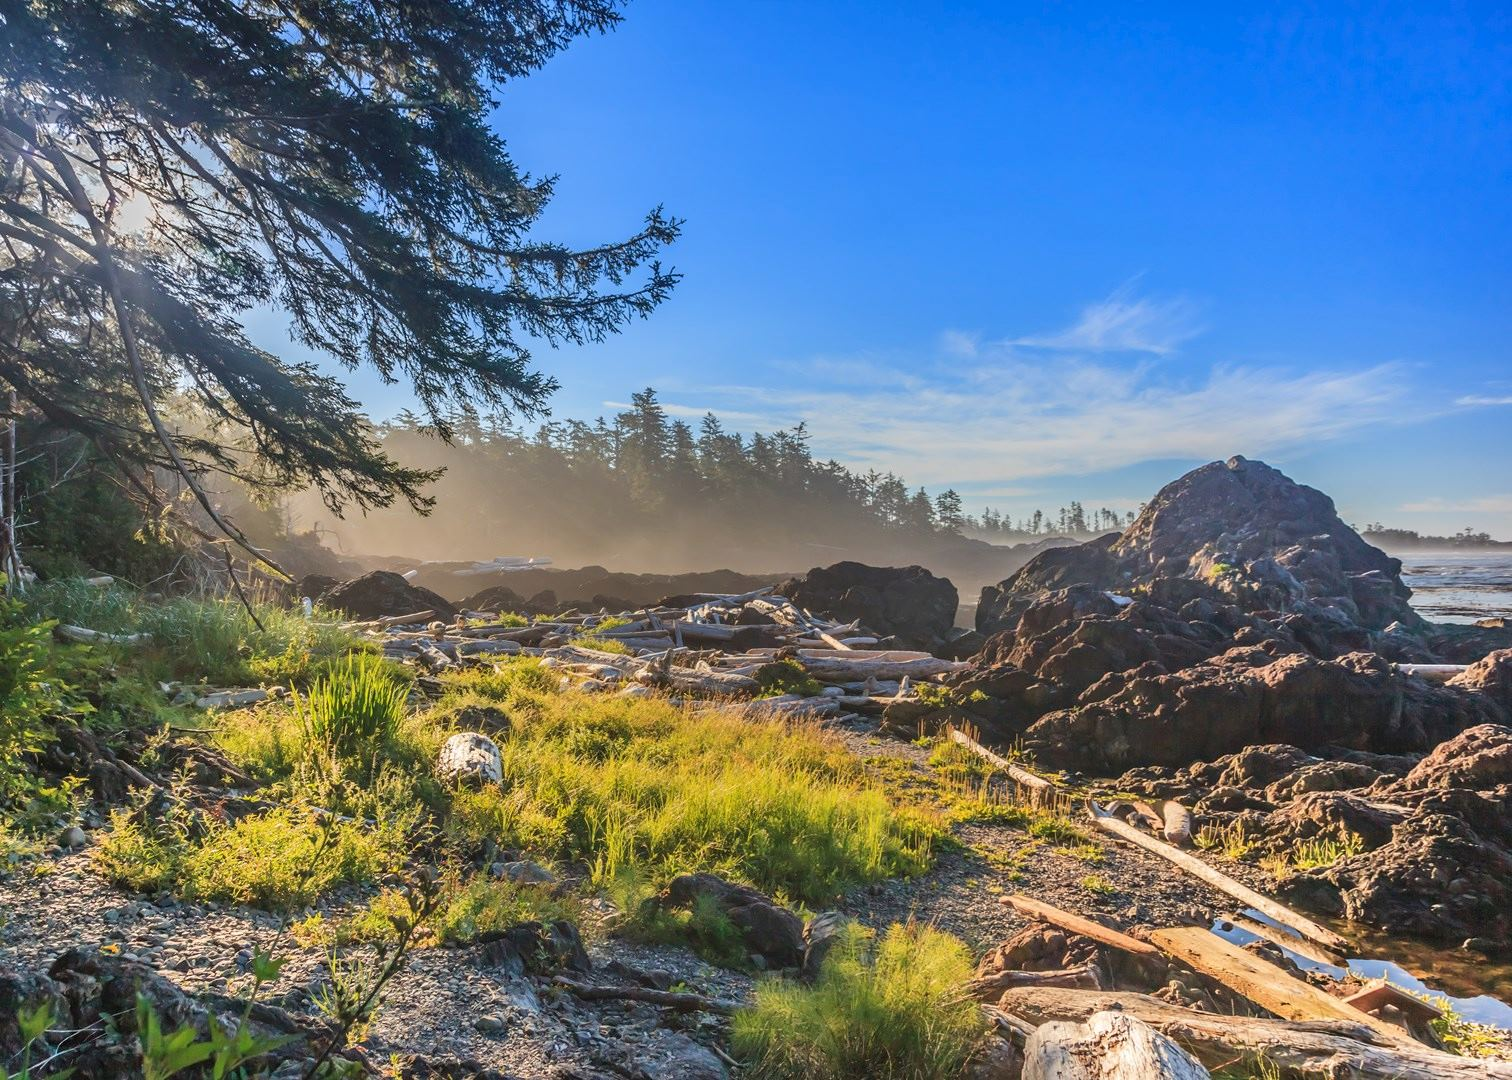 Visit Tofino On A Trip To Canada | Audley Travel